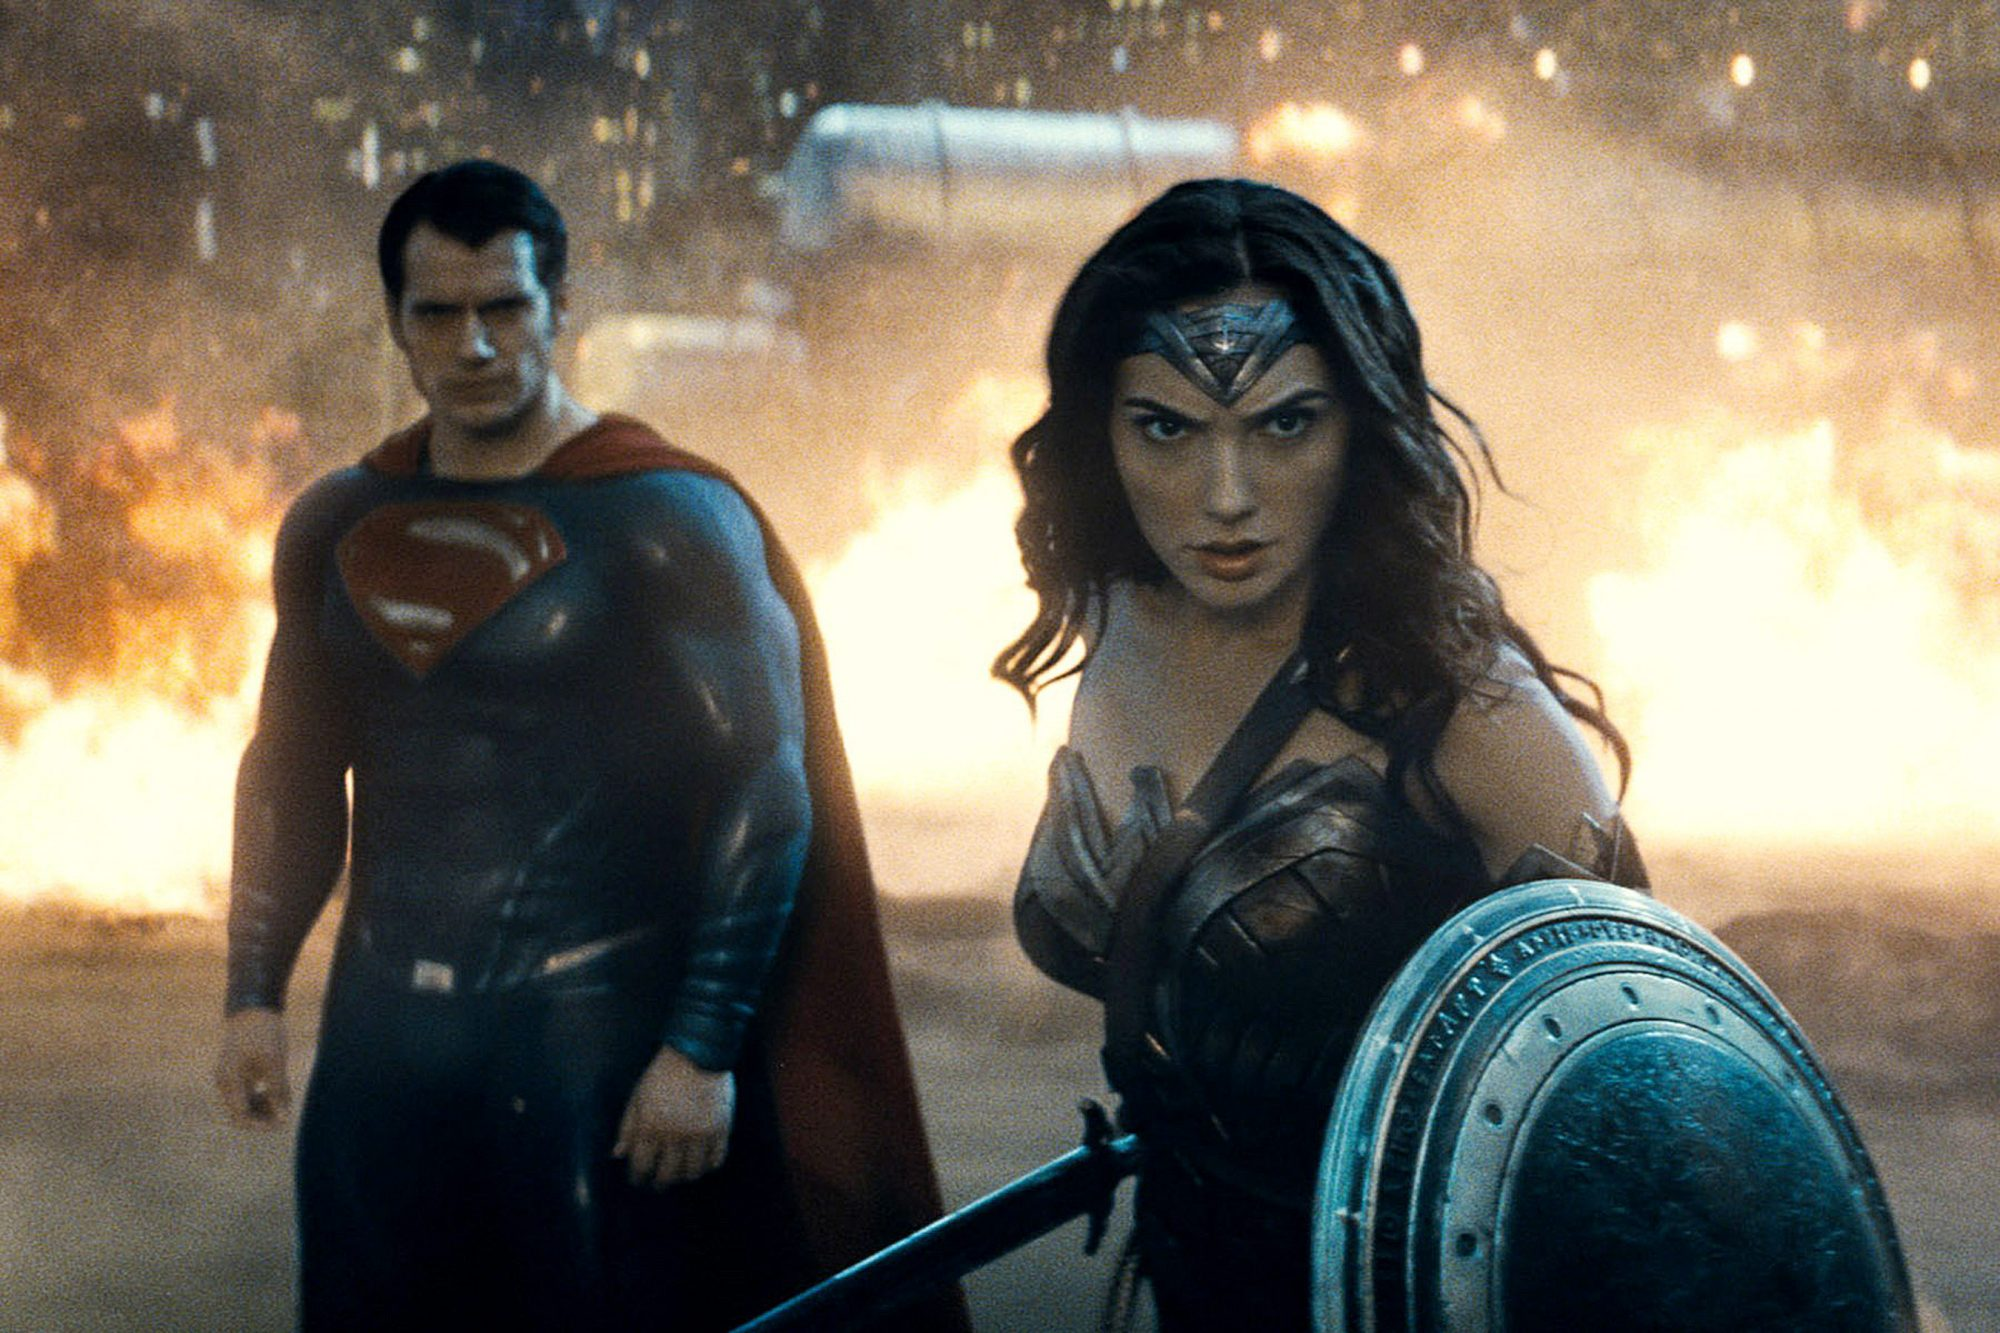 BATMAN V SUPERMAN: DAWN OF JUSTICE, from left: Henry Cavill, as Superman, Gal Gadot, as Wonder